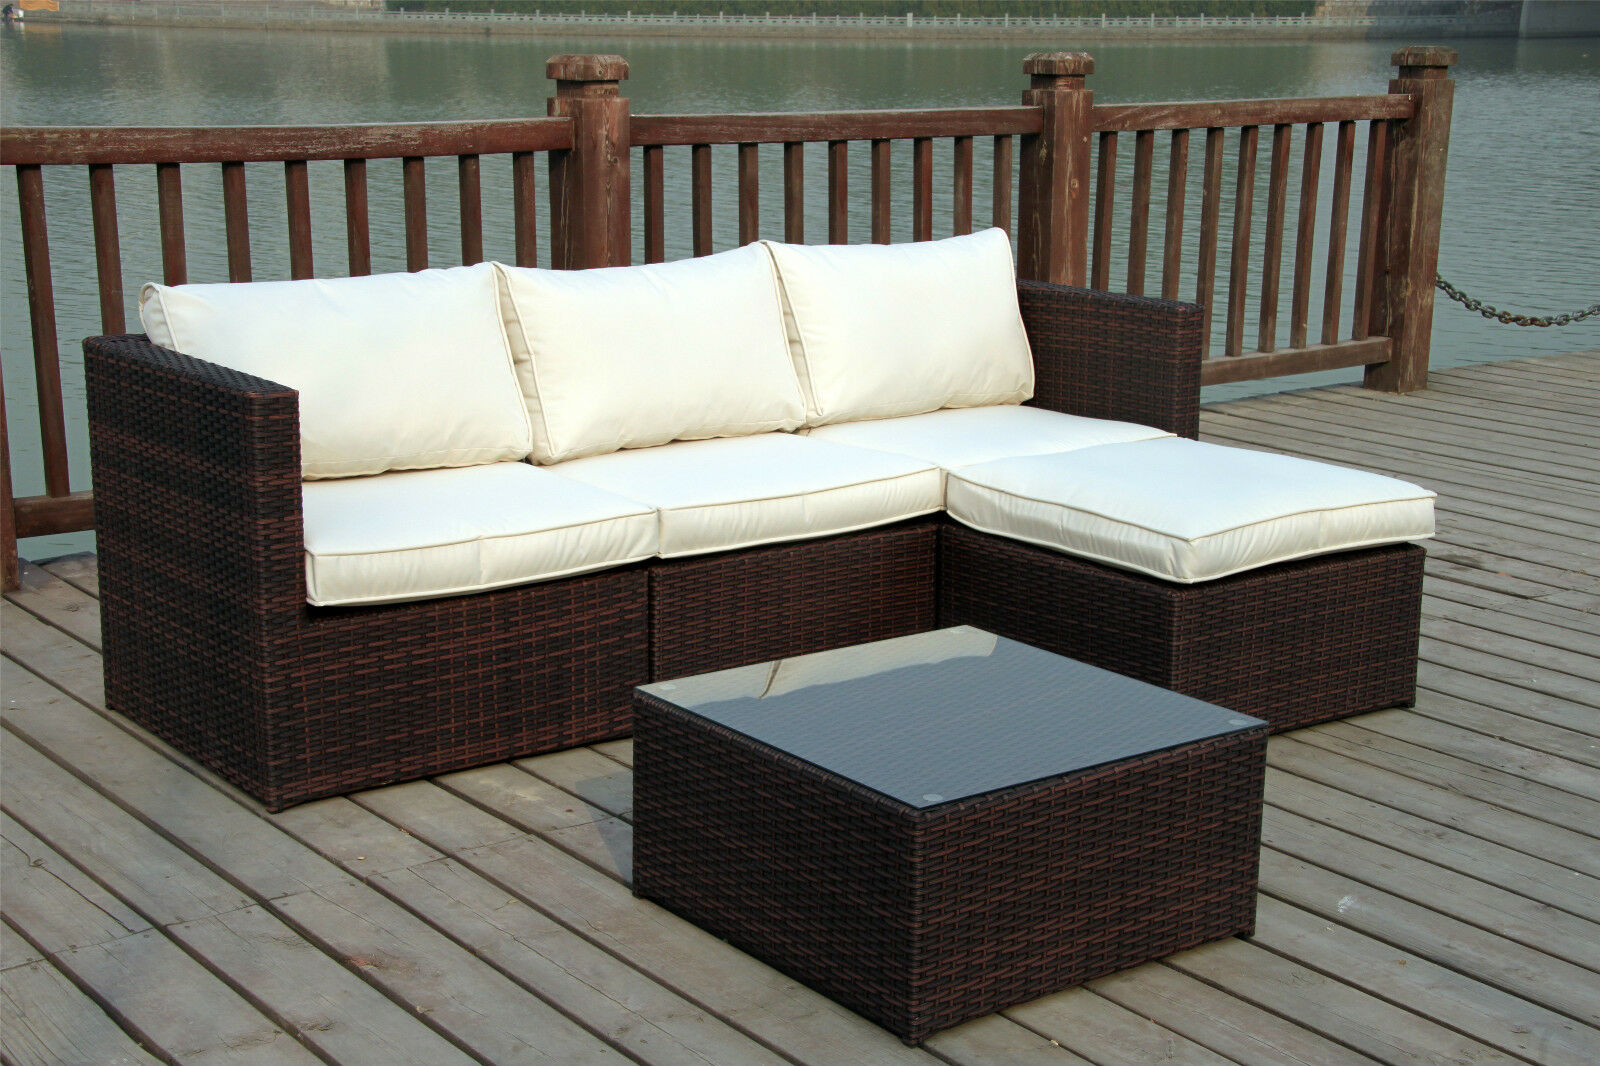 wicker sofa uk corner beds next day delivery new rattan conservatory outdoor garden furniture